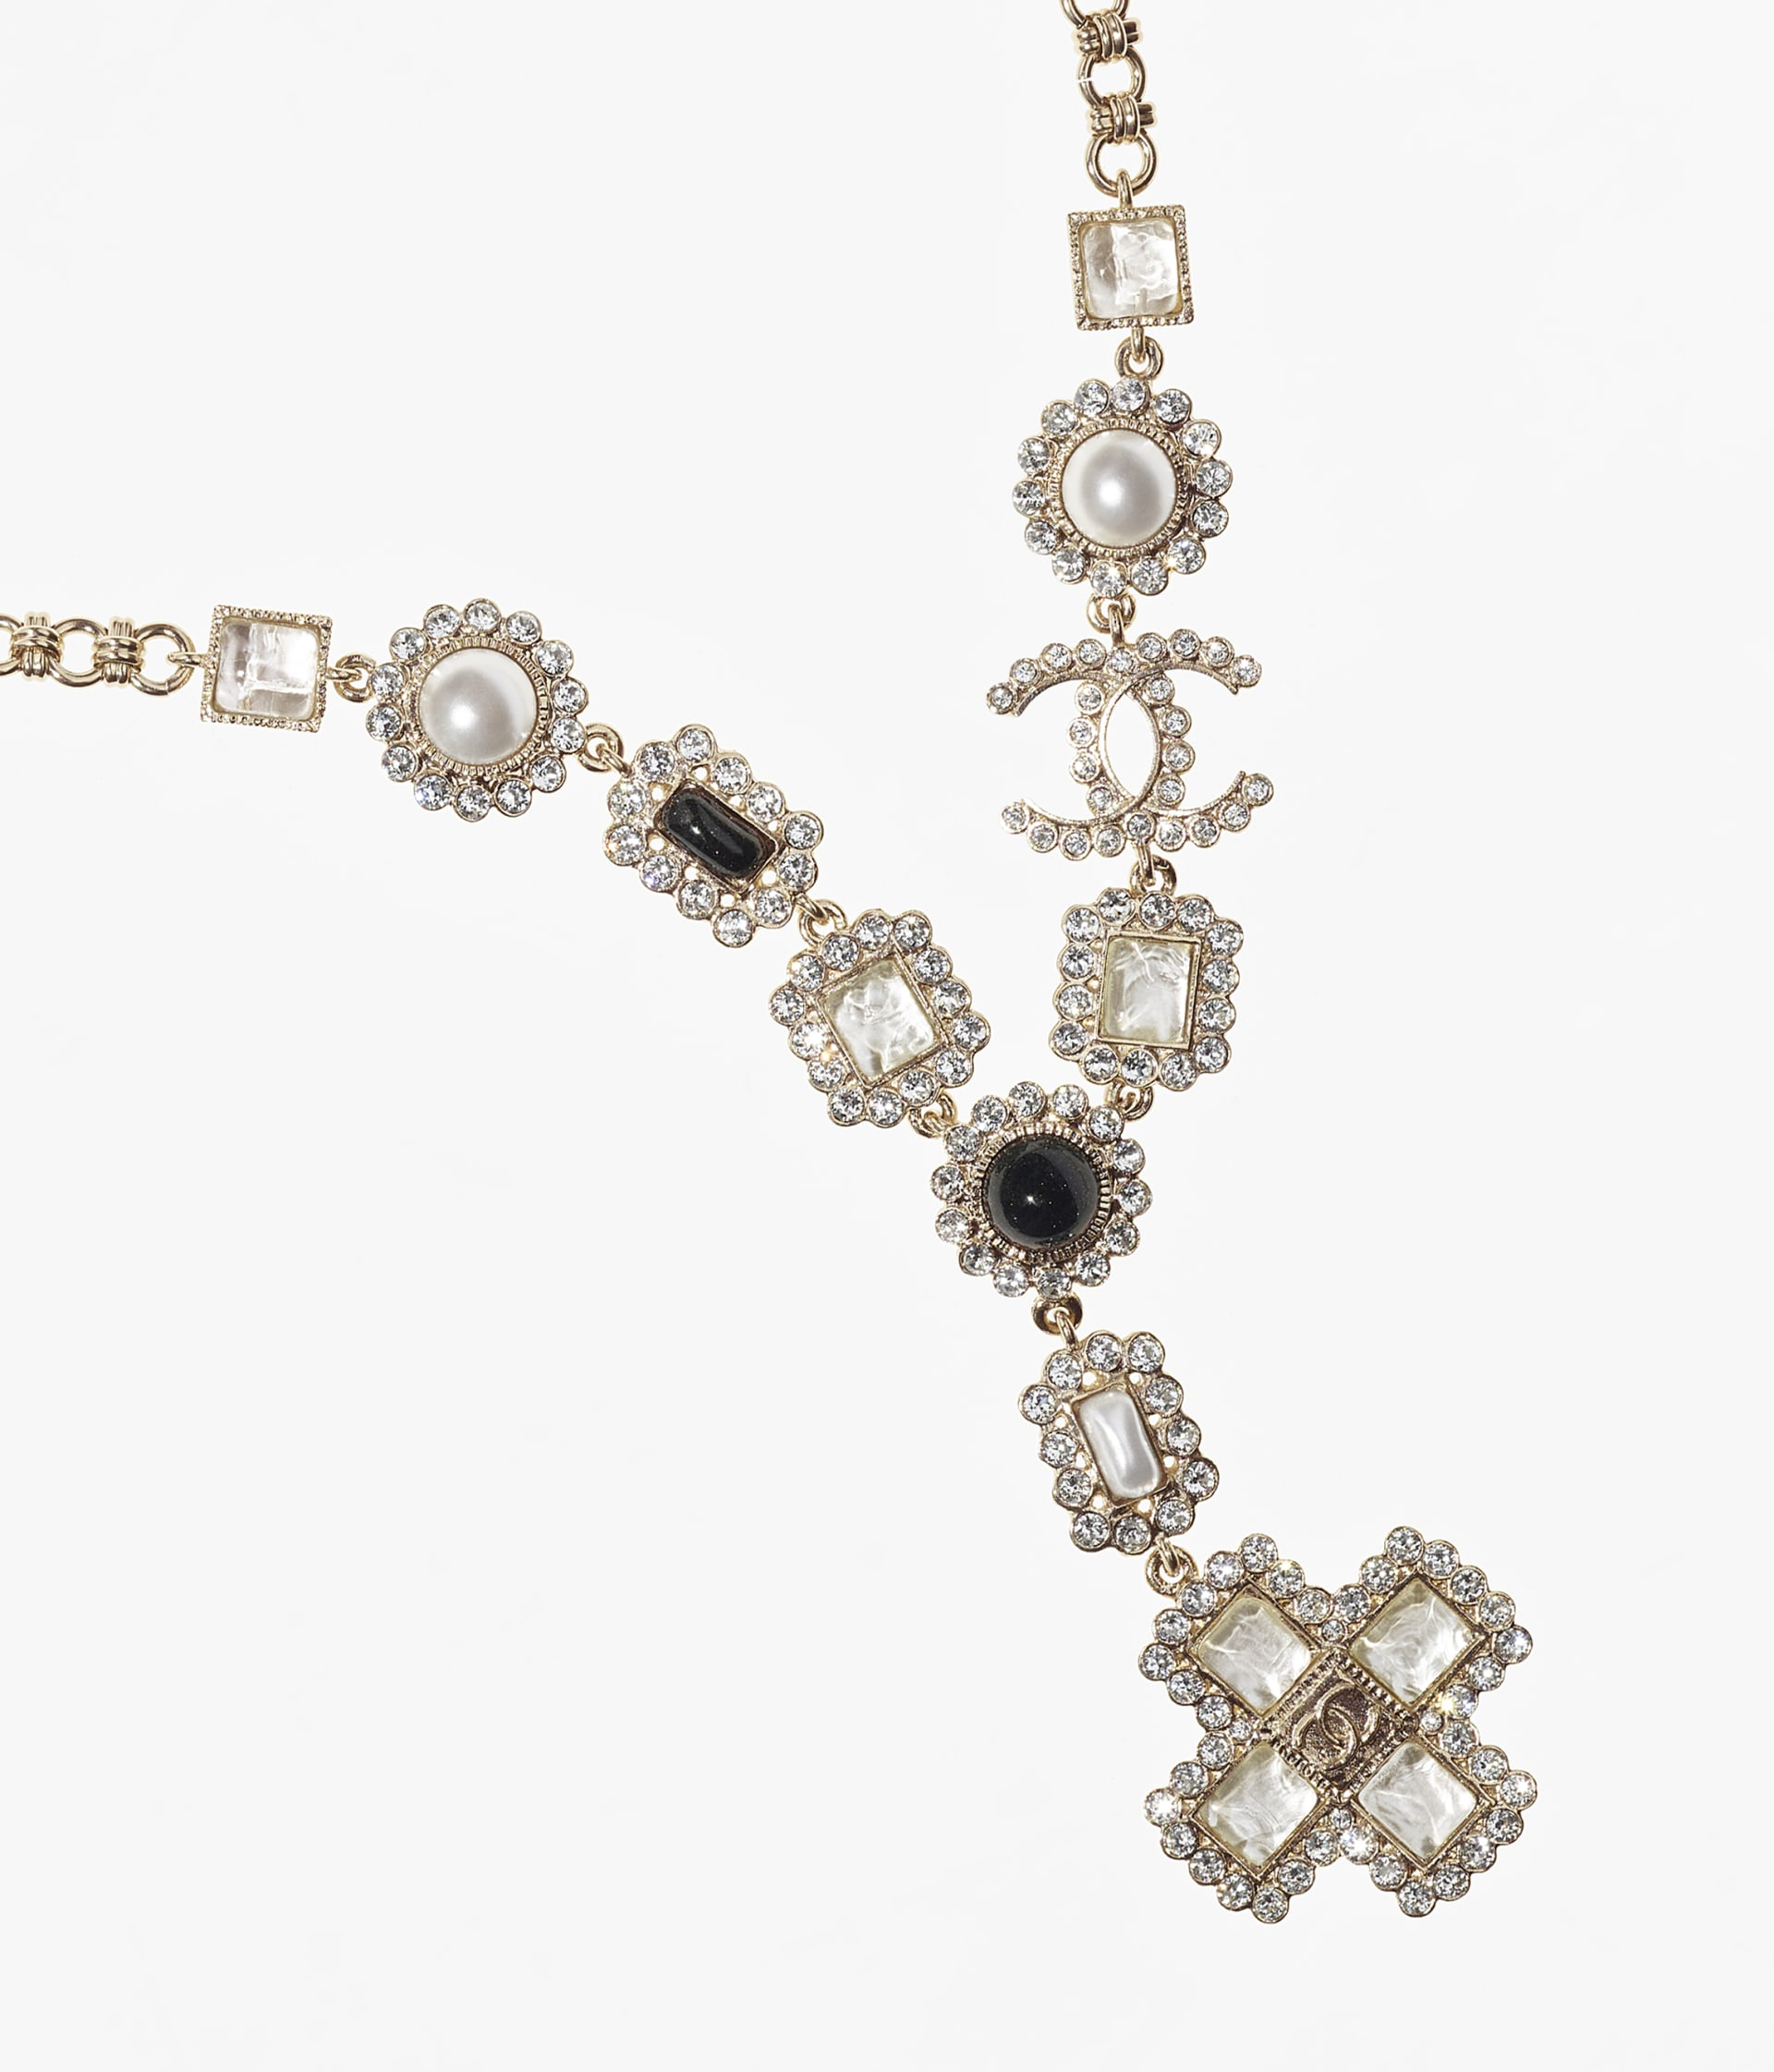 image 3 - Long Necklace - Metal, Glass Pearls, Glass & Strass - Gold, Pearly White, Black & Crystal